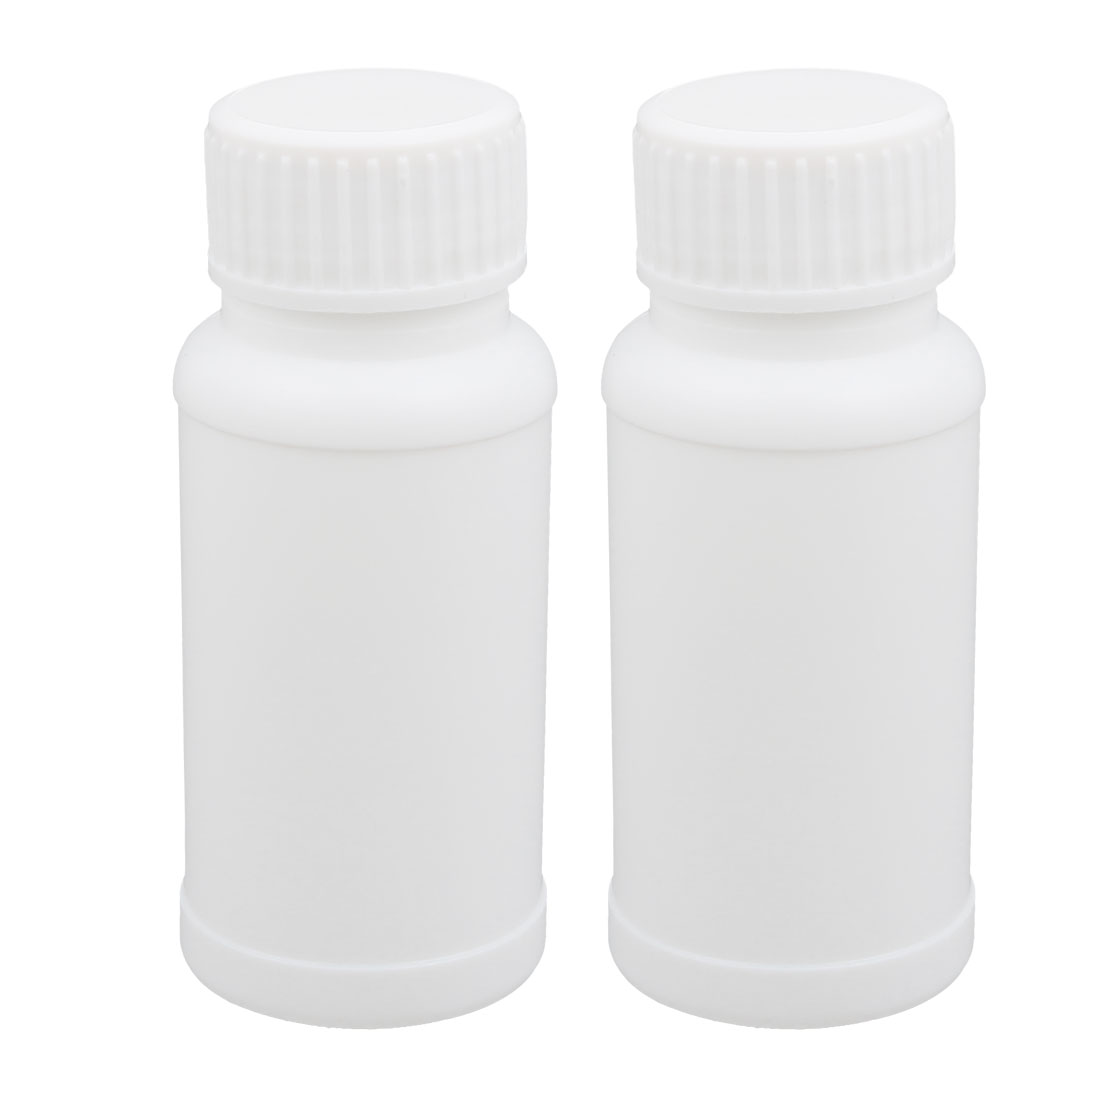 2pcs 2oz HDPE Plastic White Refillable Narrow Mouth Storage Bottle Jar